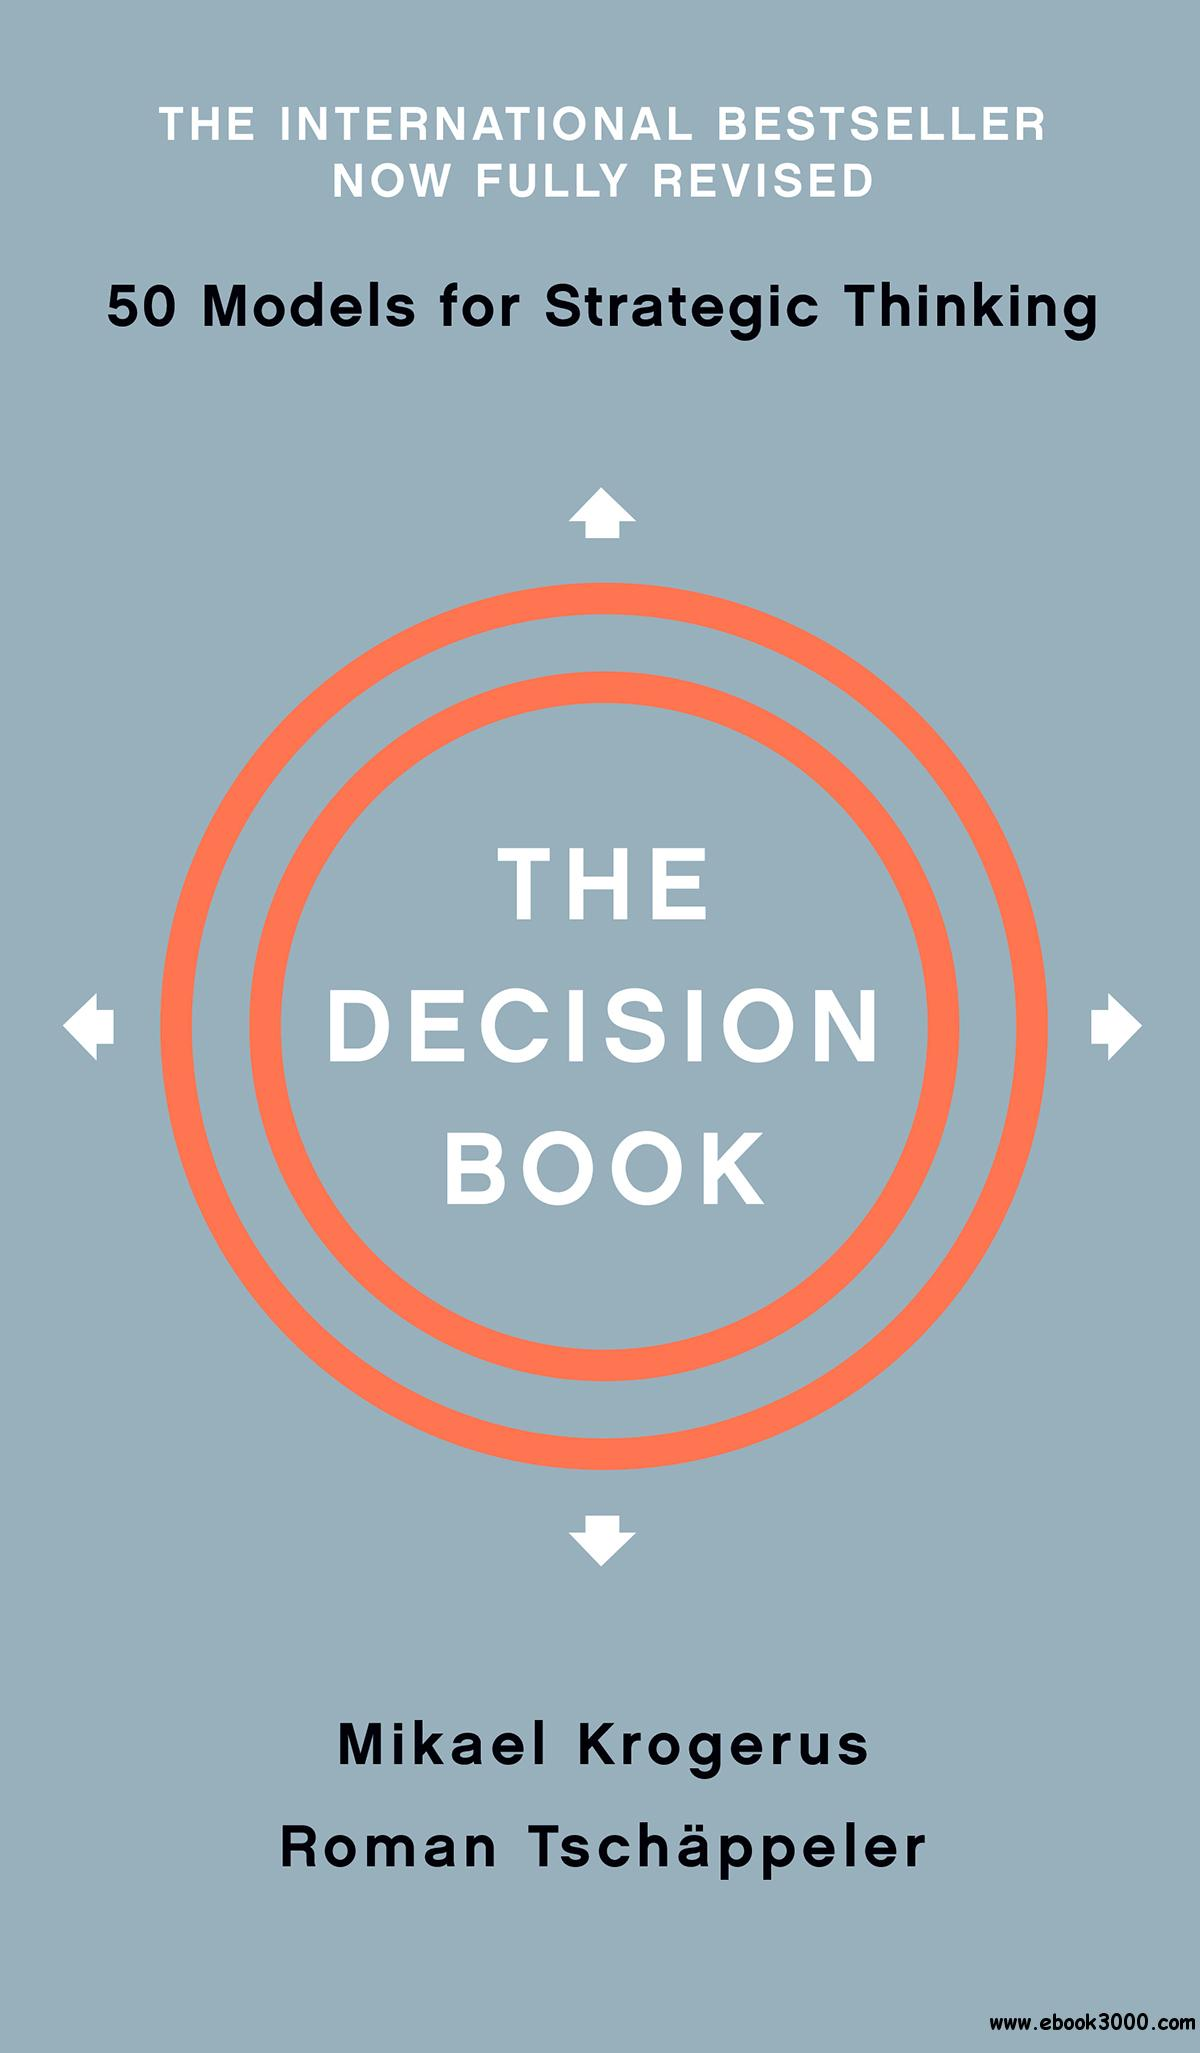 The Decision Book: Fifty Models for Strategic Thinking, 2nd Fully Revised Edition